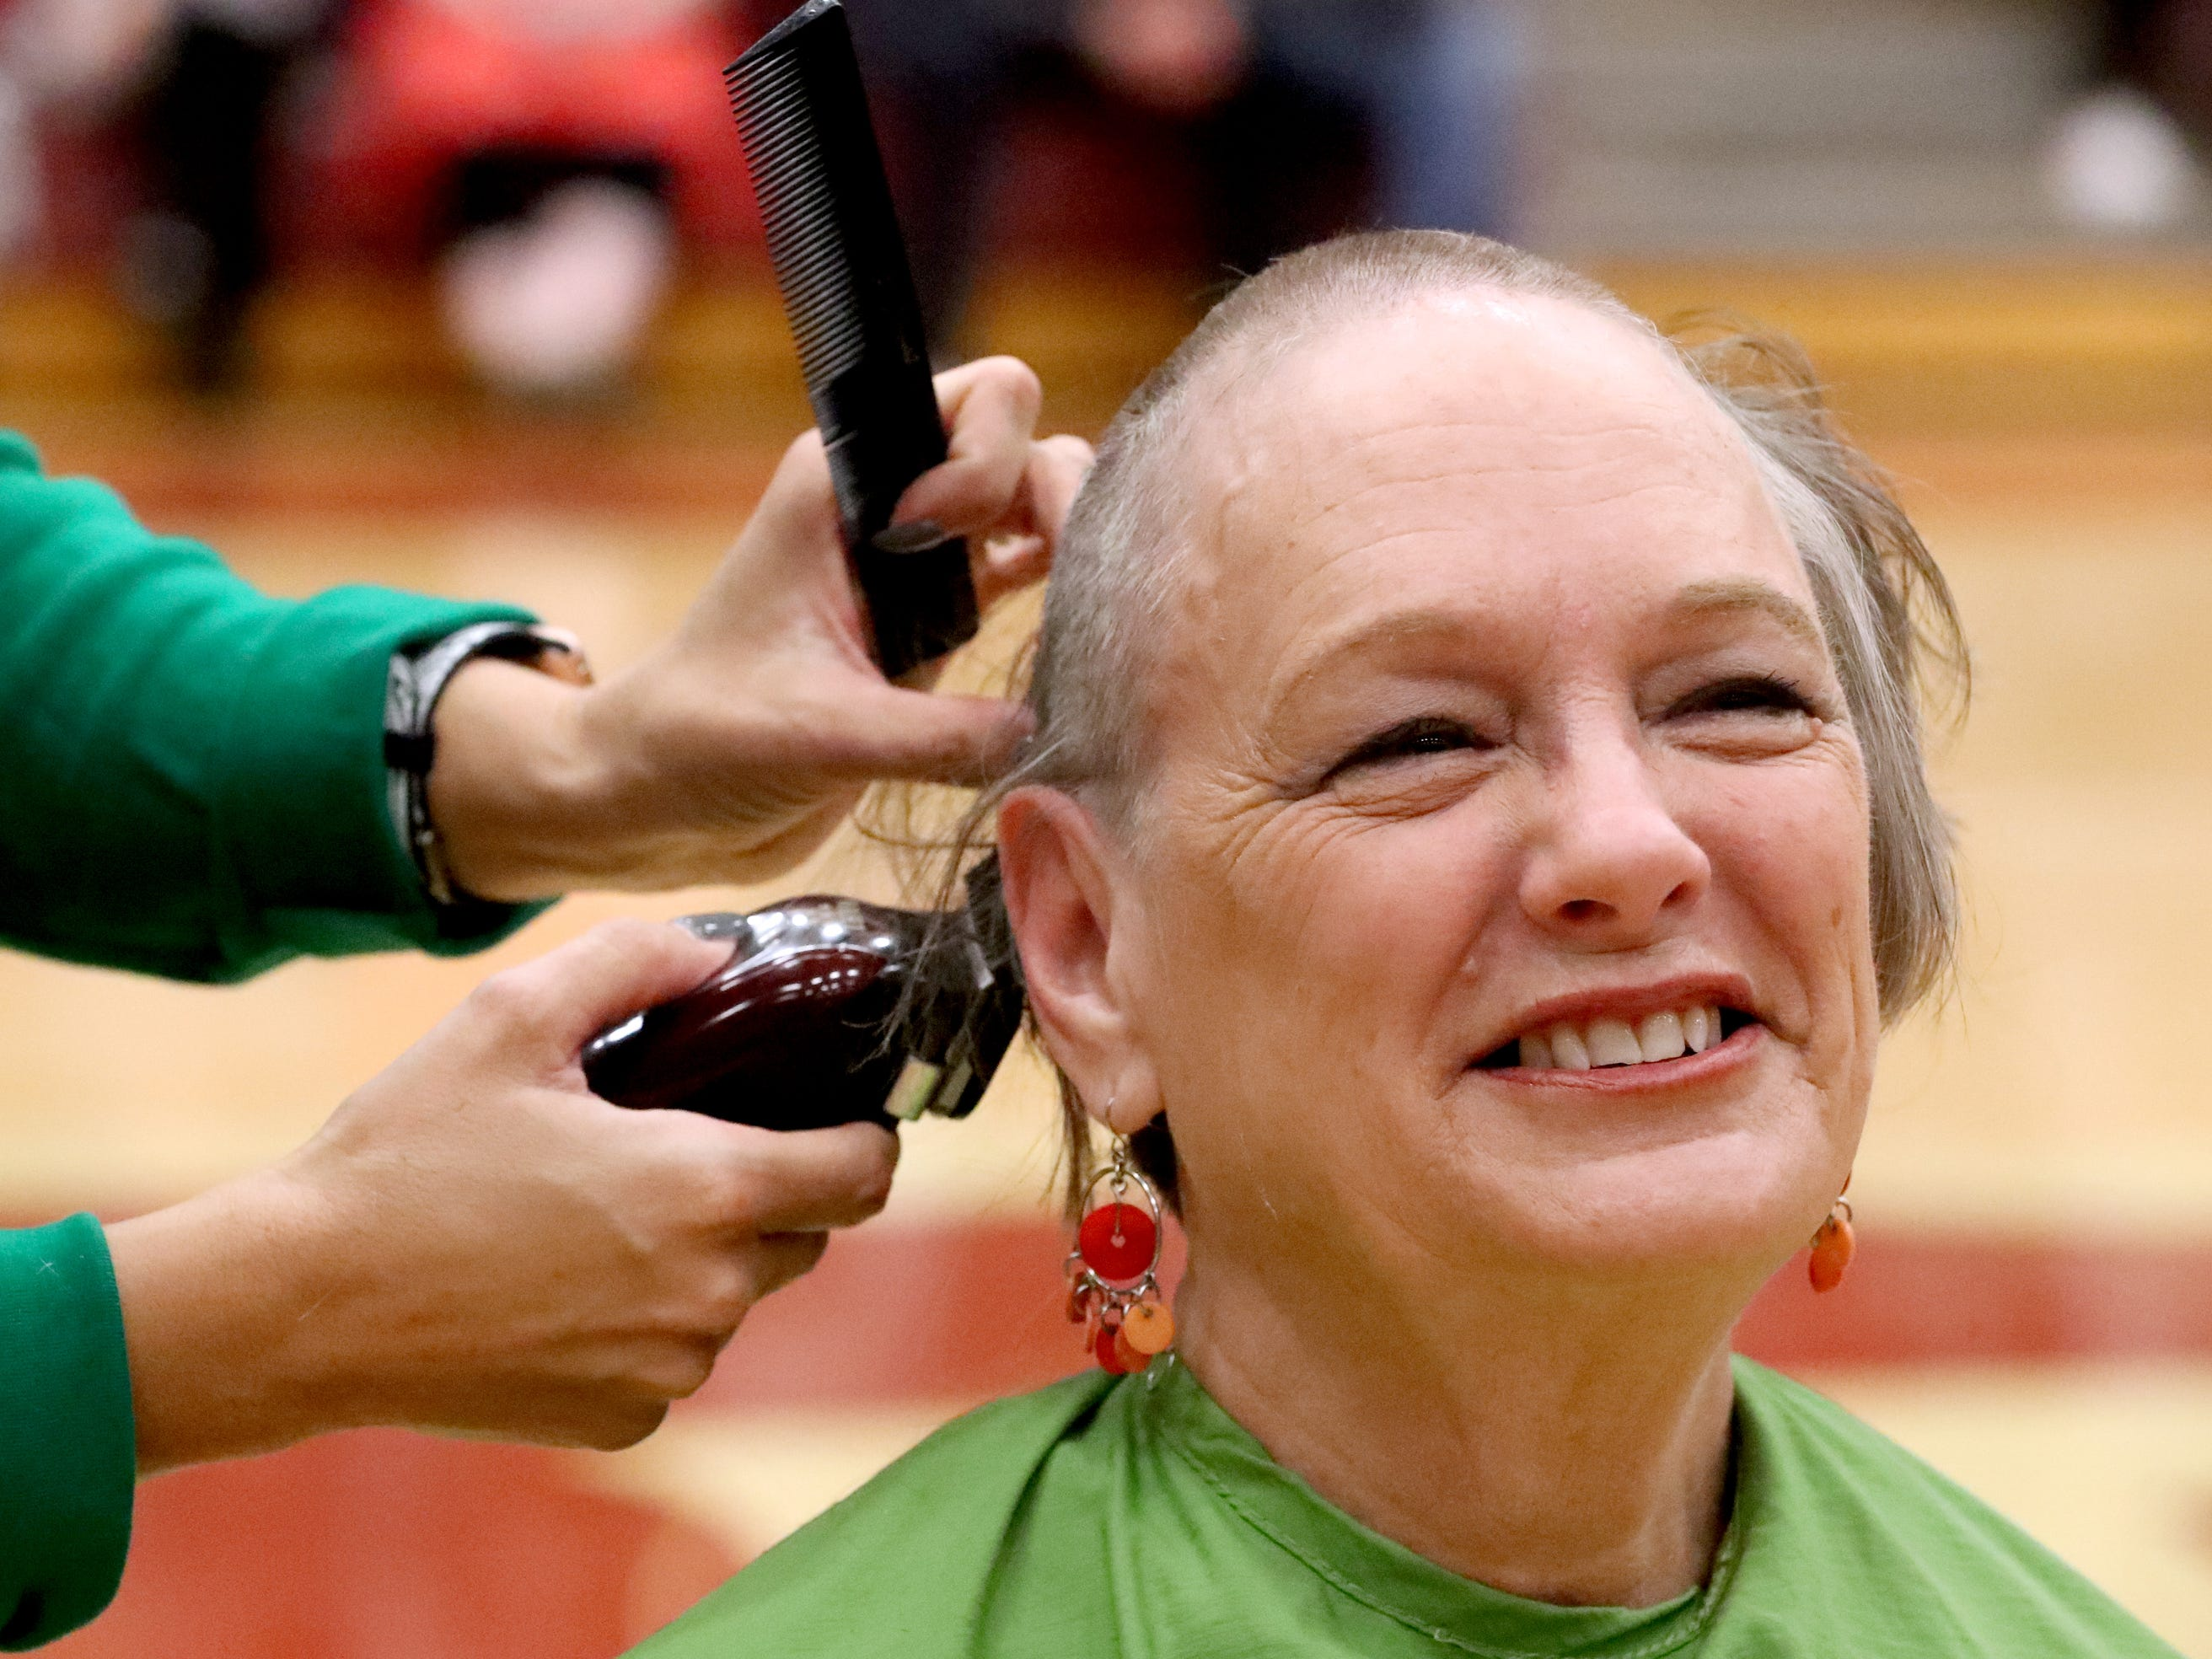 Kathy Youse reacts as she gets her head shaved during Riverdale High School's sixth annual Brave the Shave fundraiser to benefit St. Baldrick's Foundation on Thursday, March 21, 2019. The organization raises funds and awareness for childhood cancer.